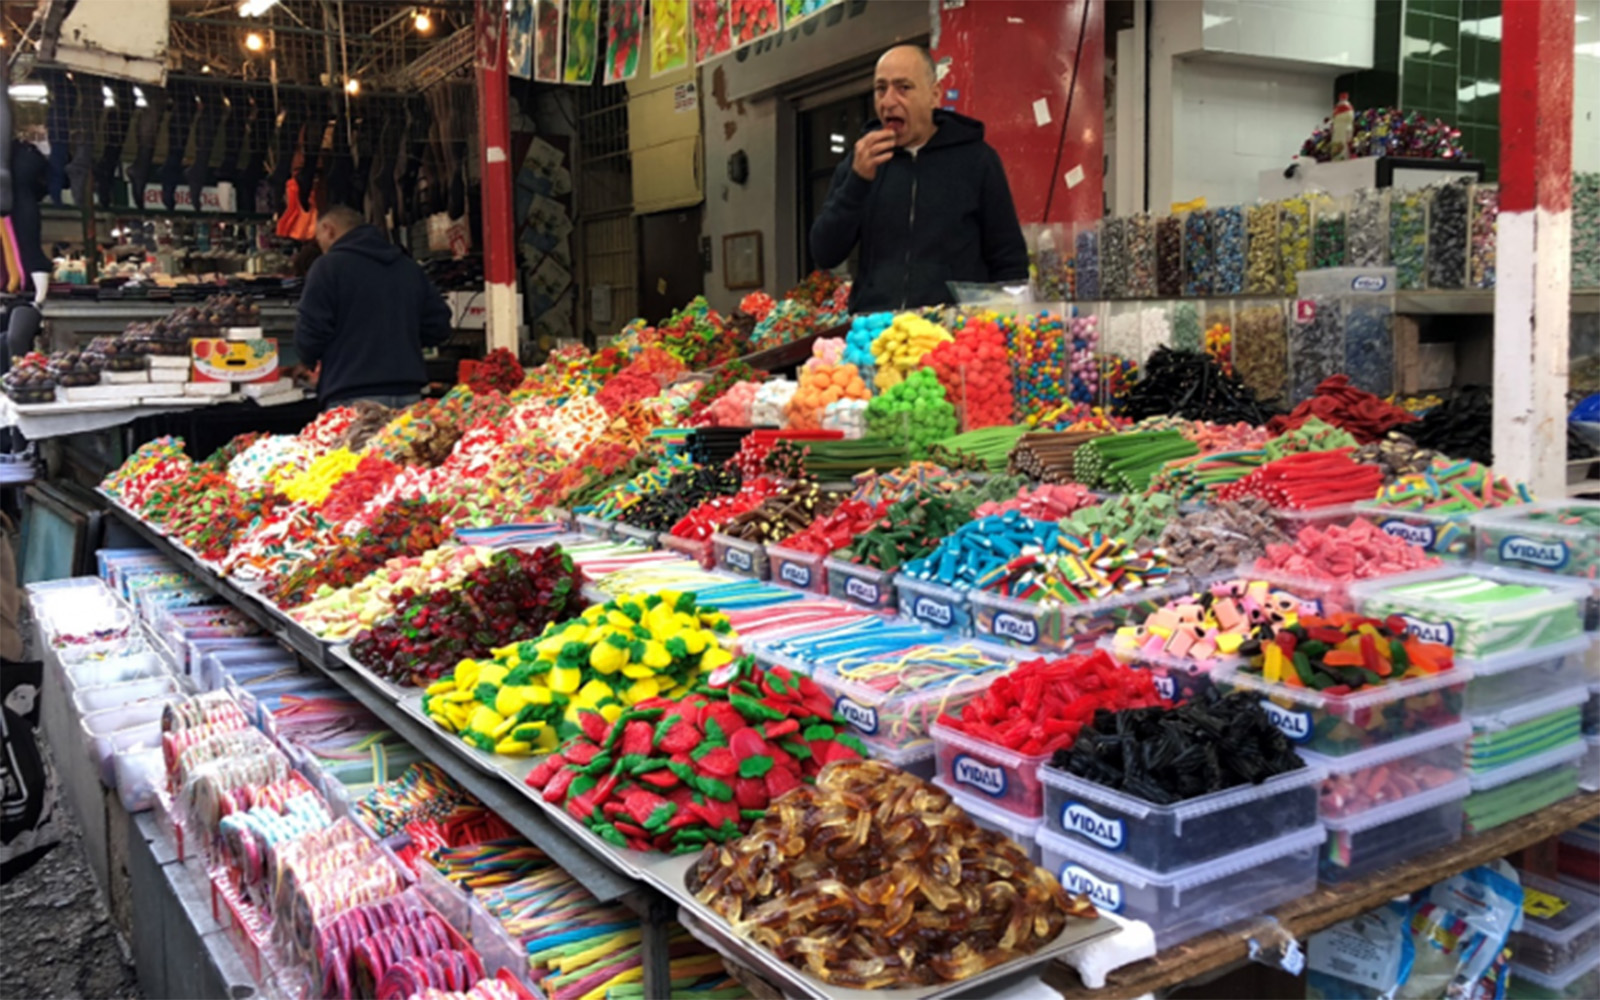 Vendor selling candy in Carmel Market in Tel Aviv (Jonathan Hague/UConn School of Law)